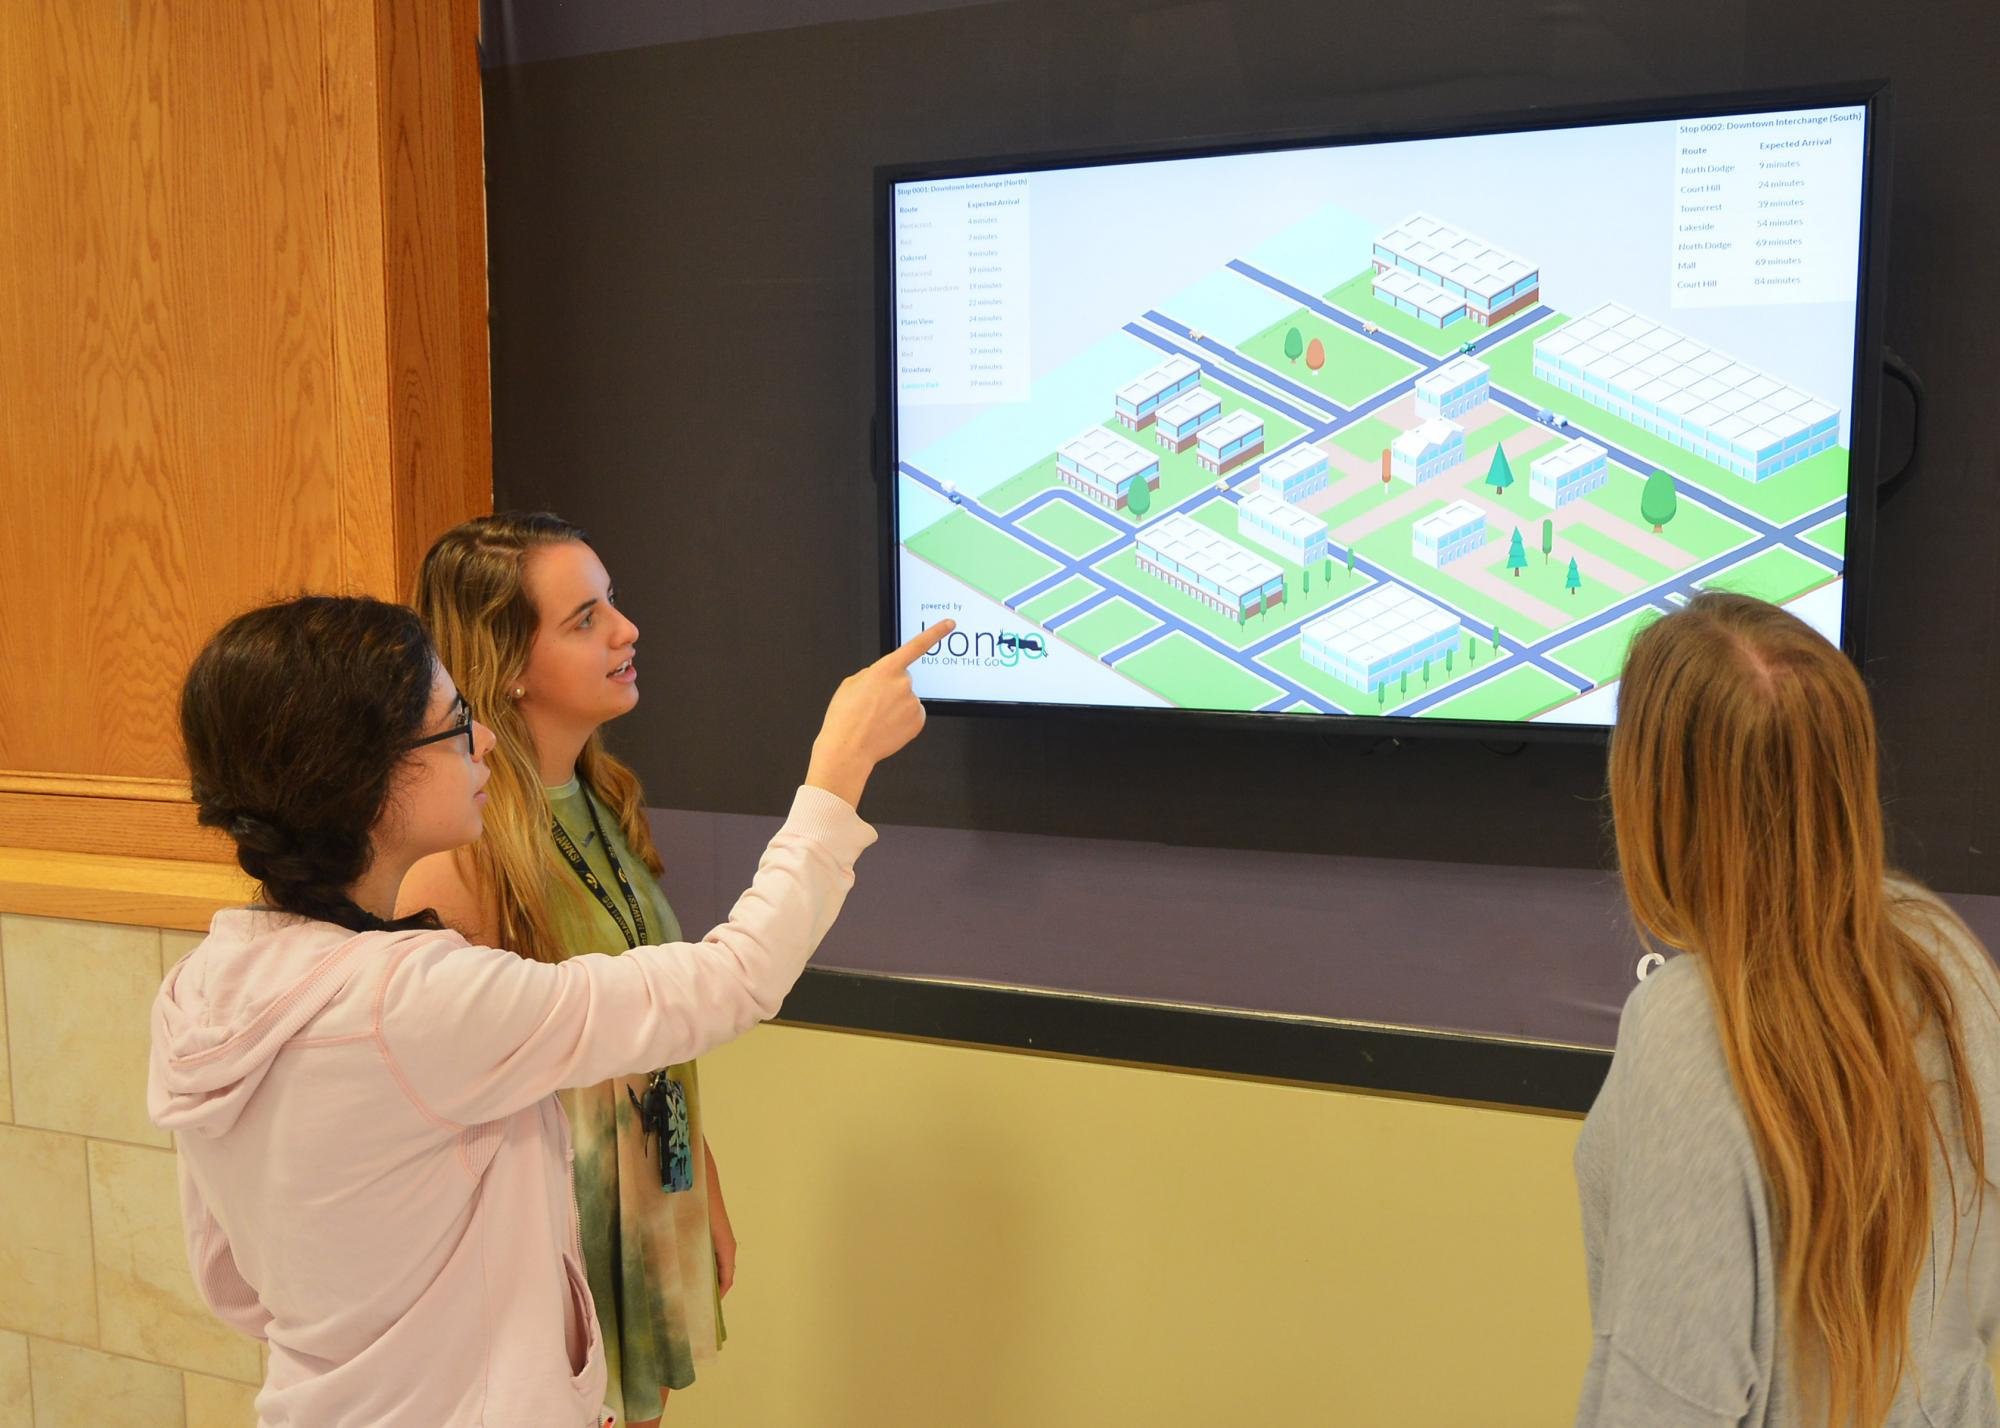 women looking at and pointing at digital signage